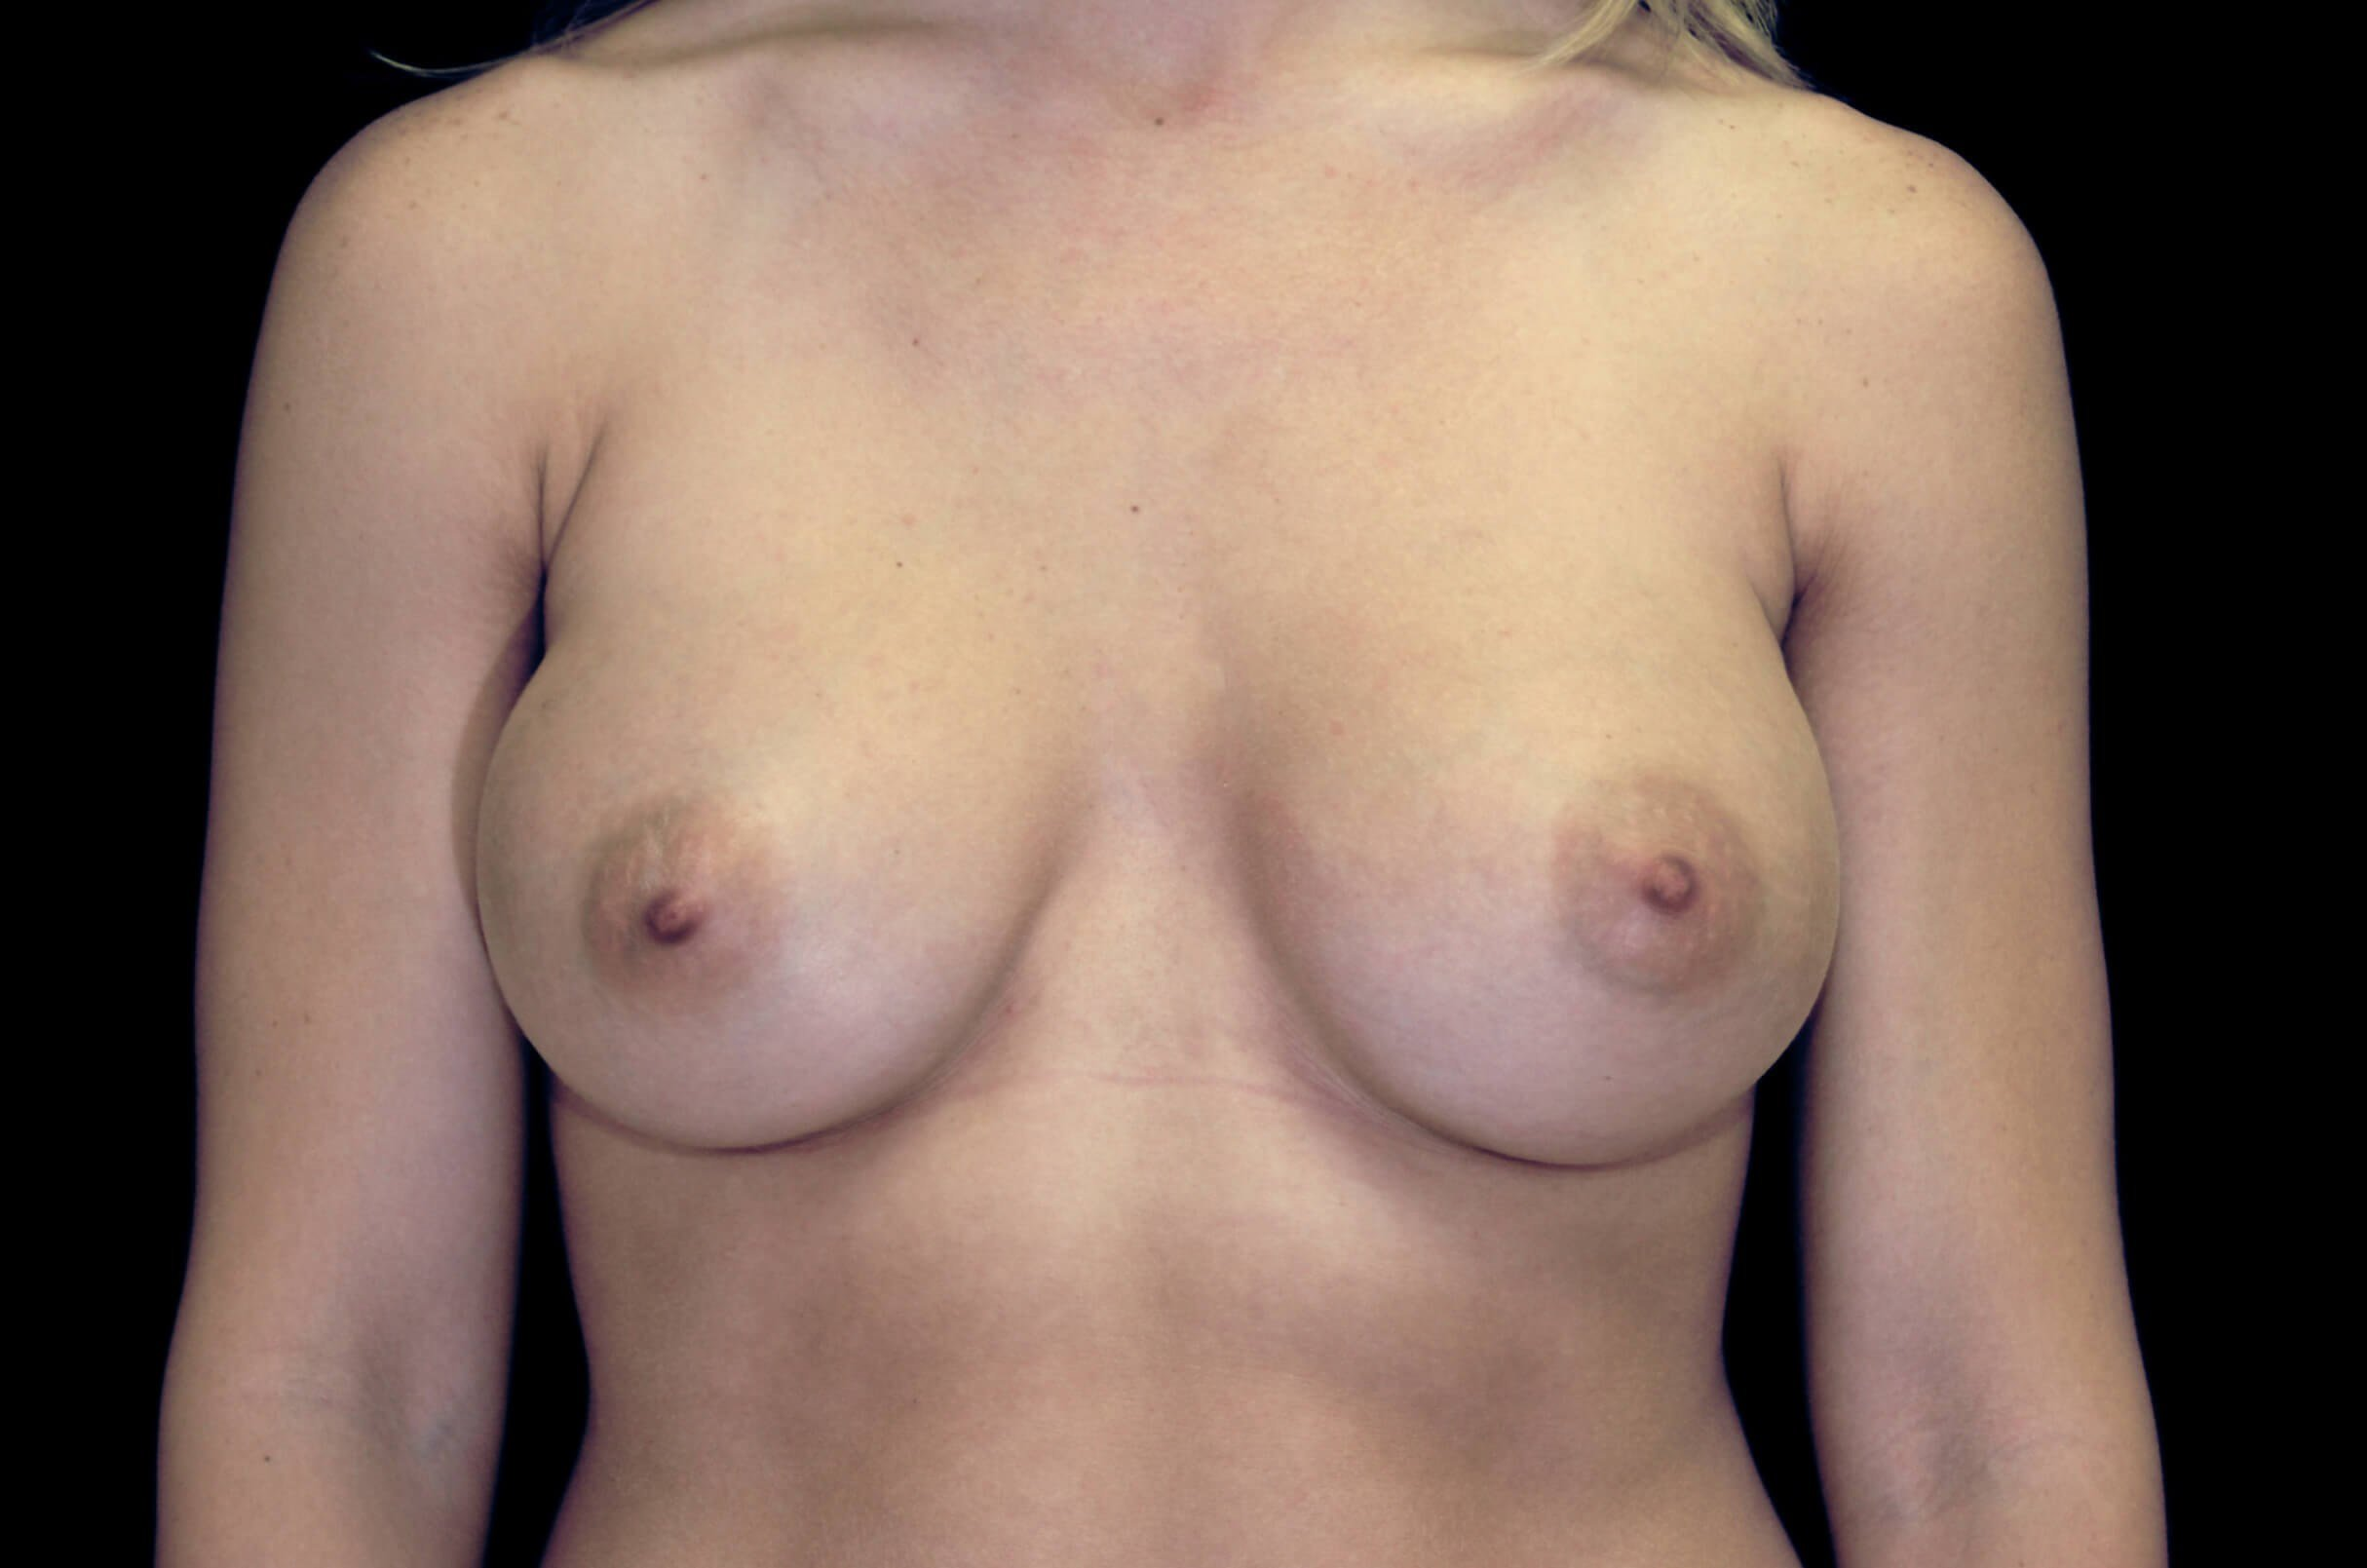 Breast Augmentation Procedure After Silicone Gel Implants